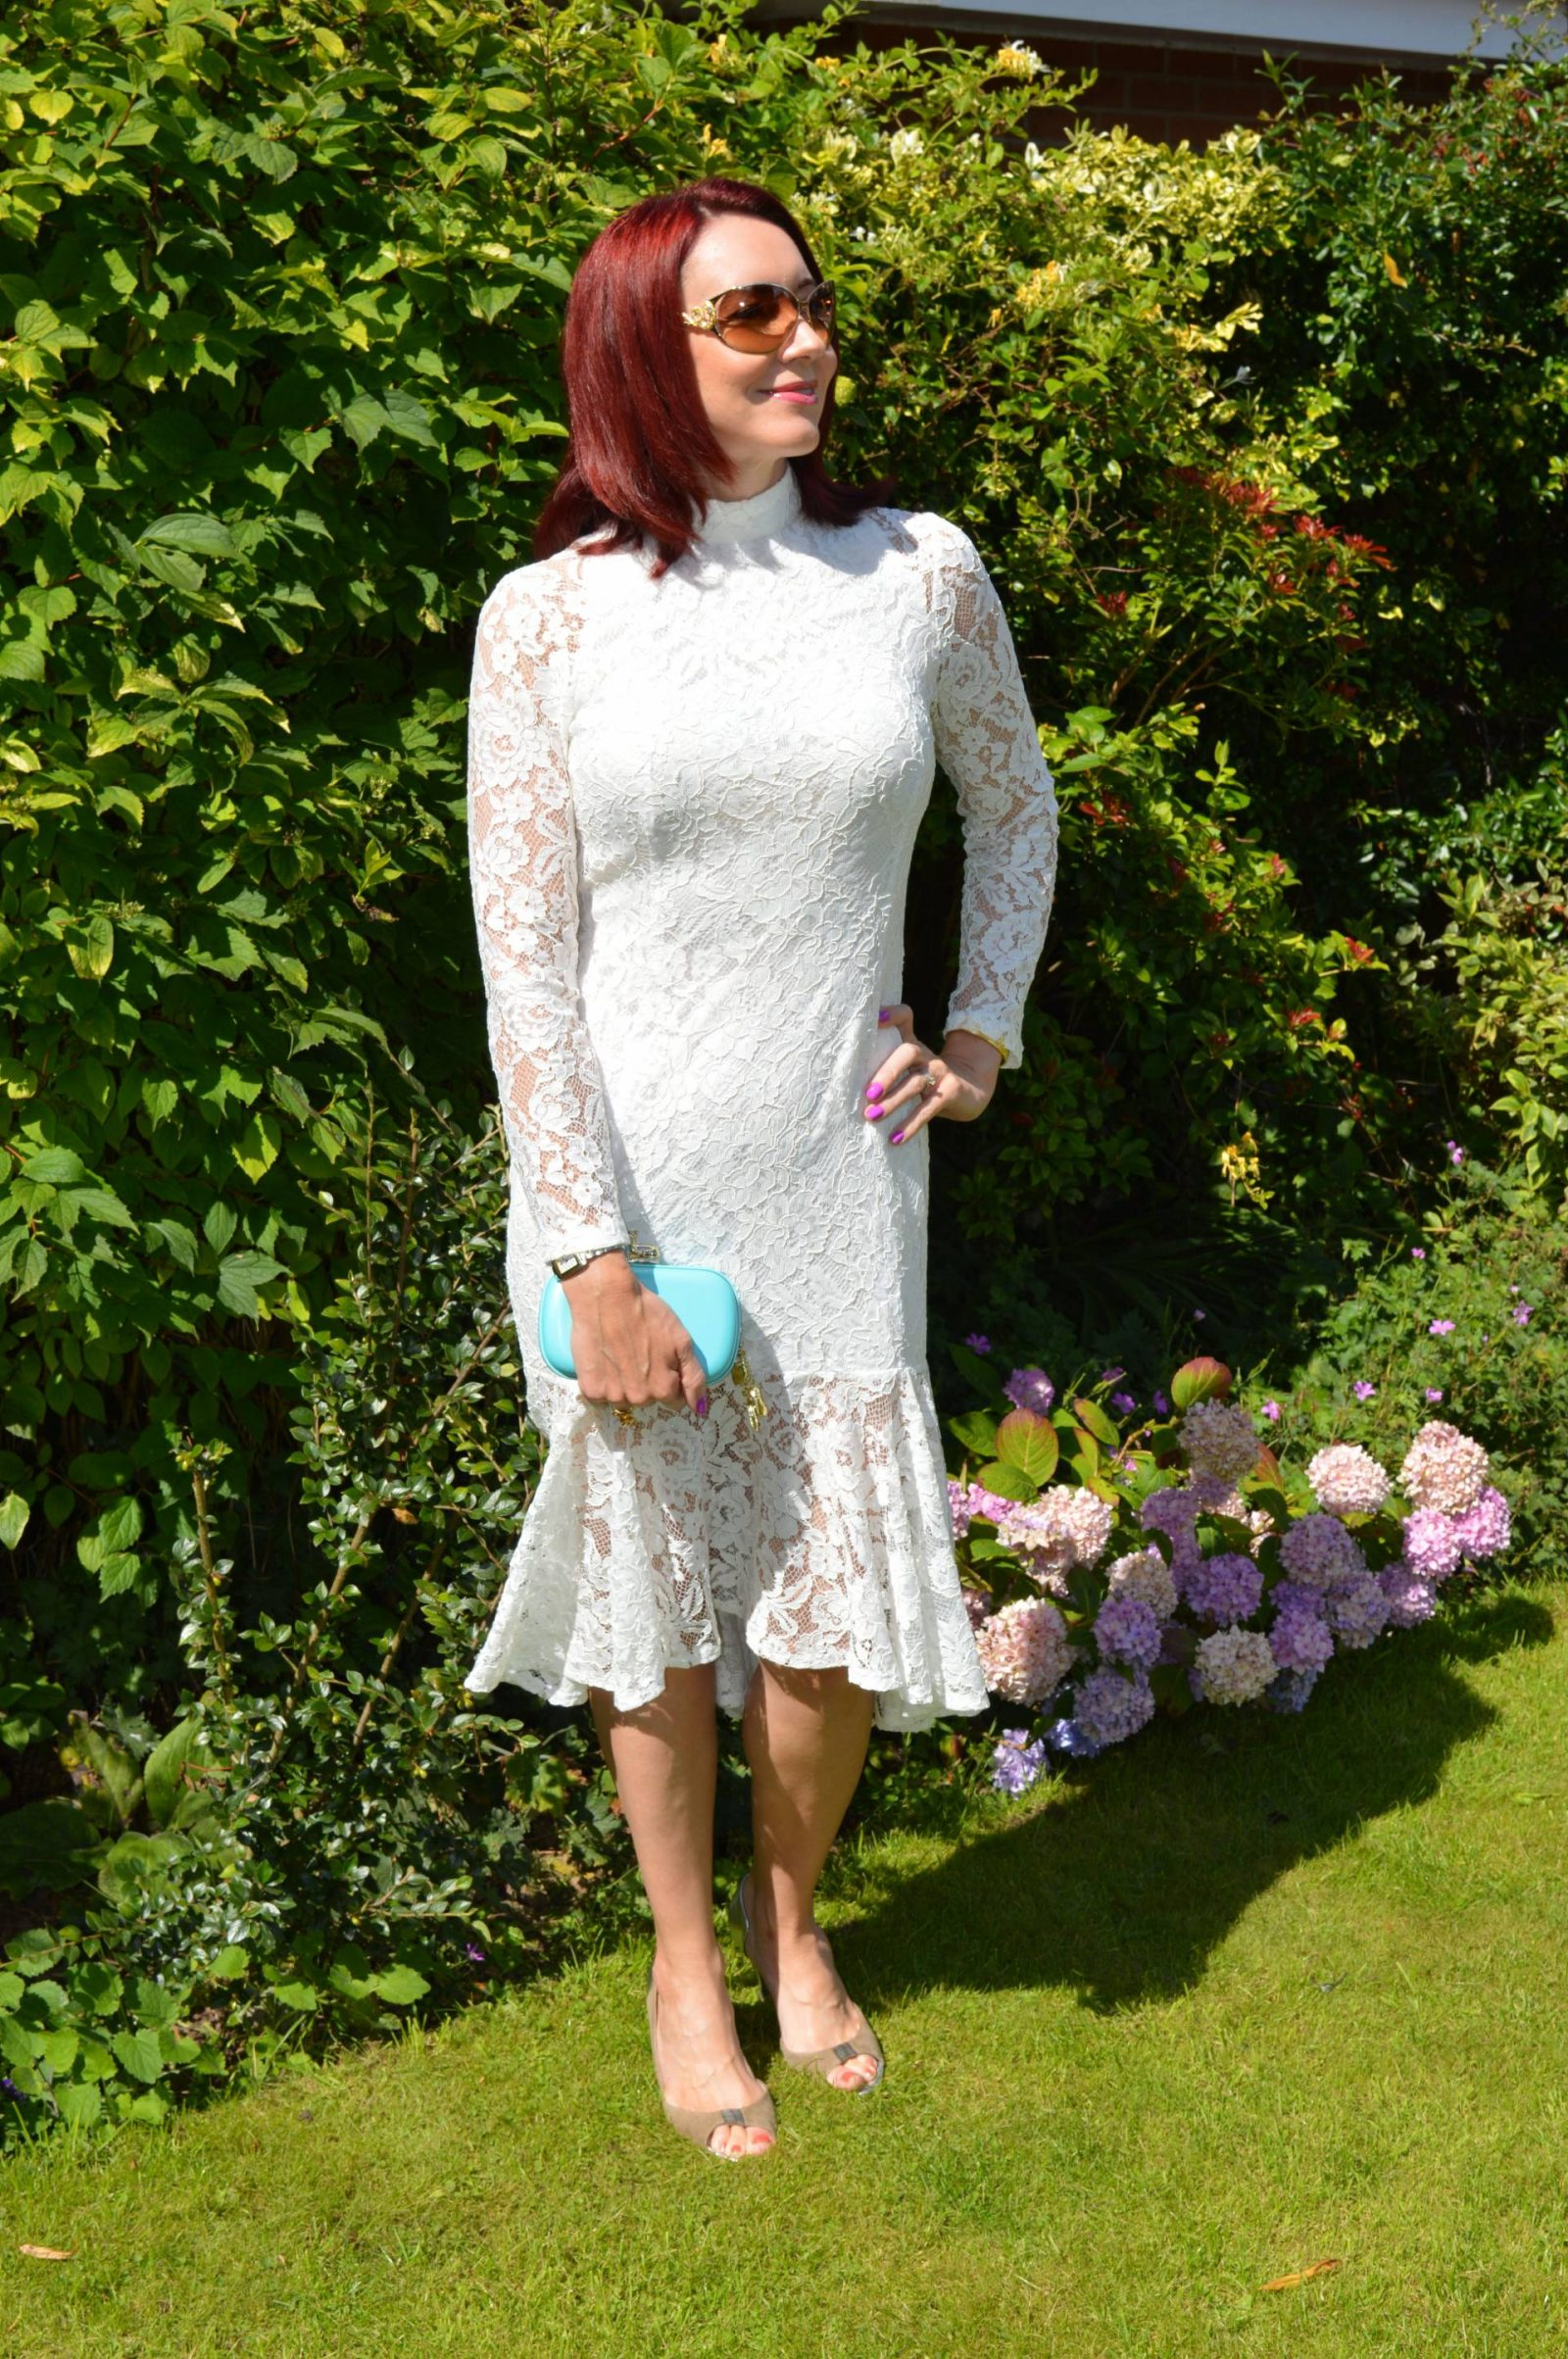 Wedding Guest Dresses From PrettyLittleThing Ellina white lace fishtail dress Anna Dello Russo H&M clutch bag